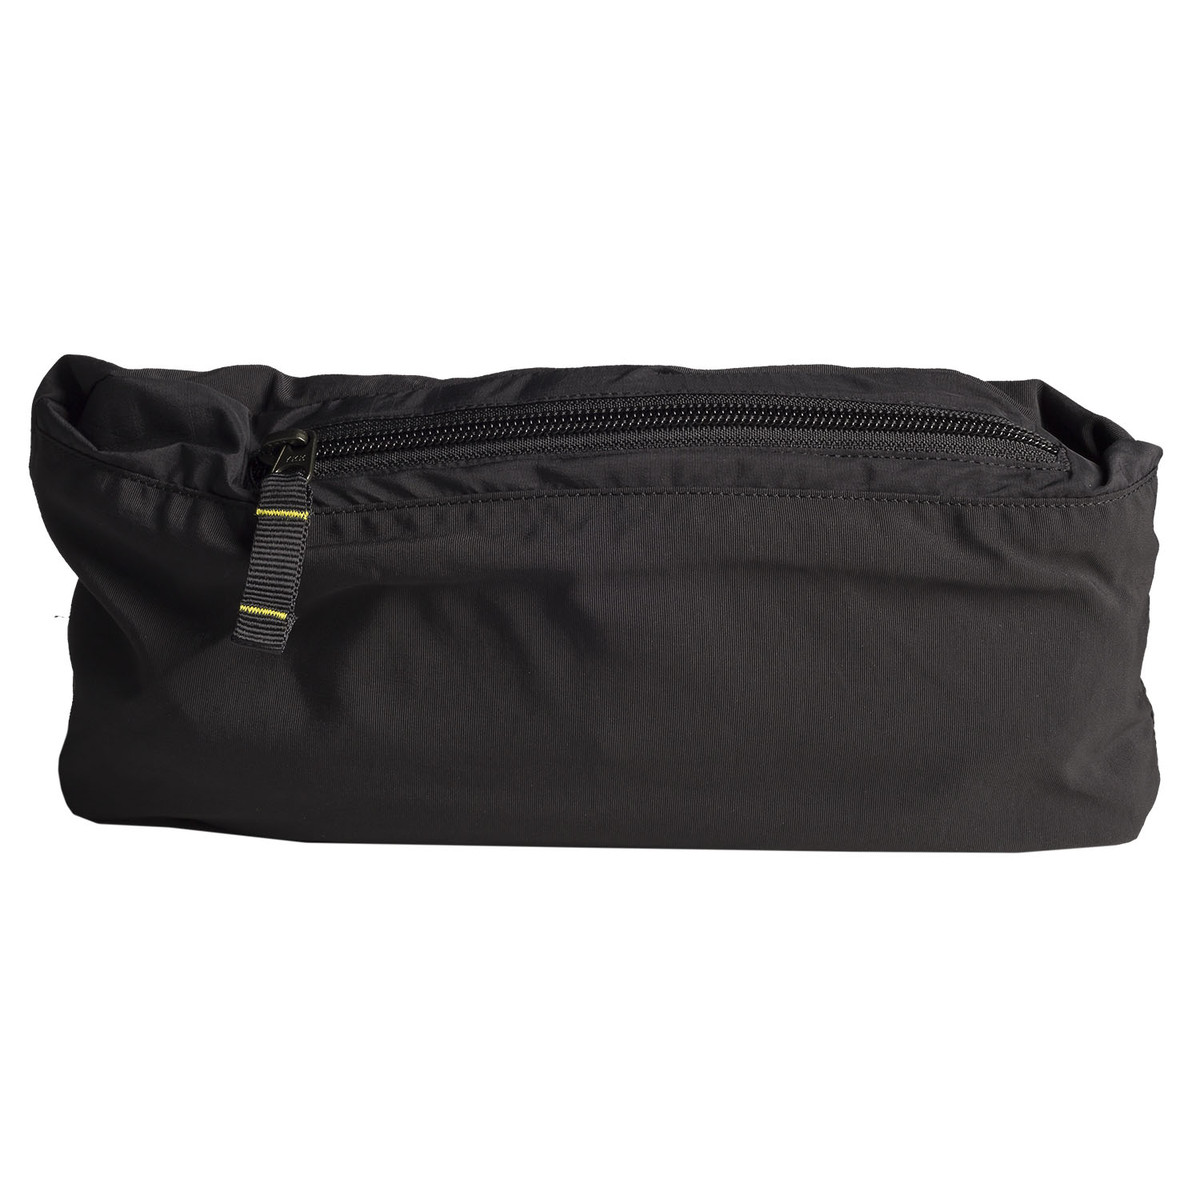 ForecastJacketBlackinBag